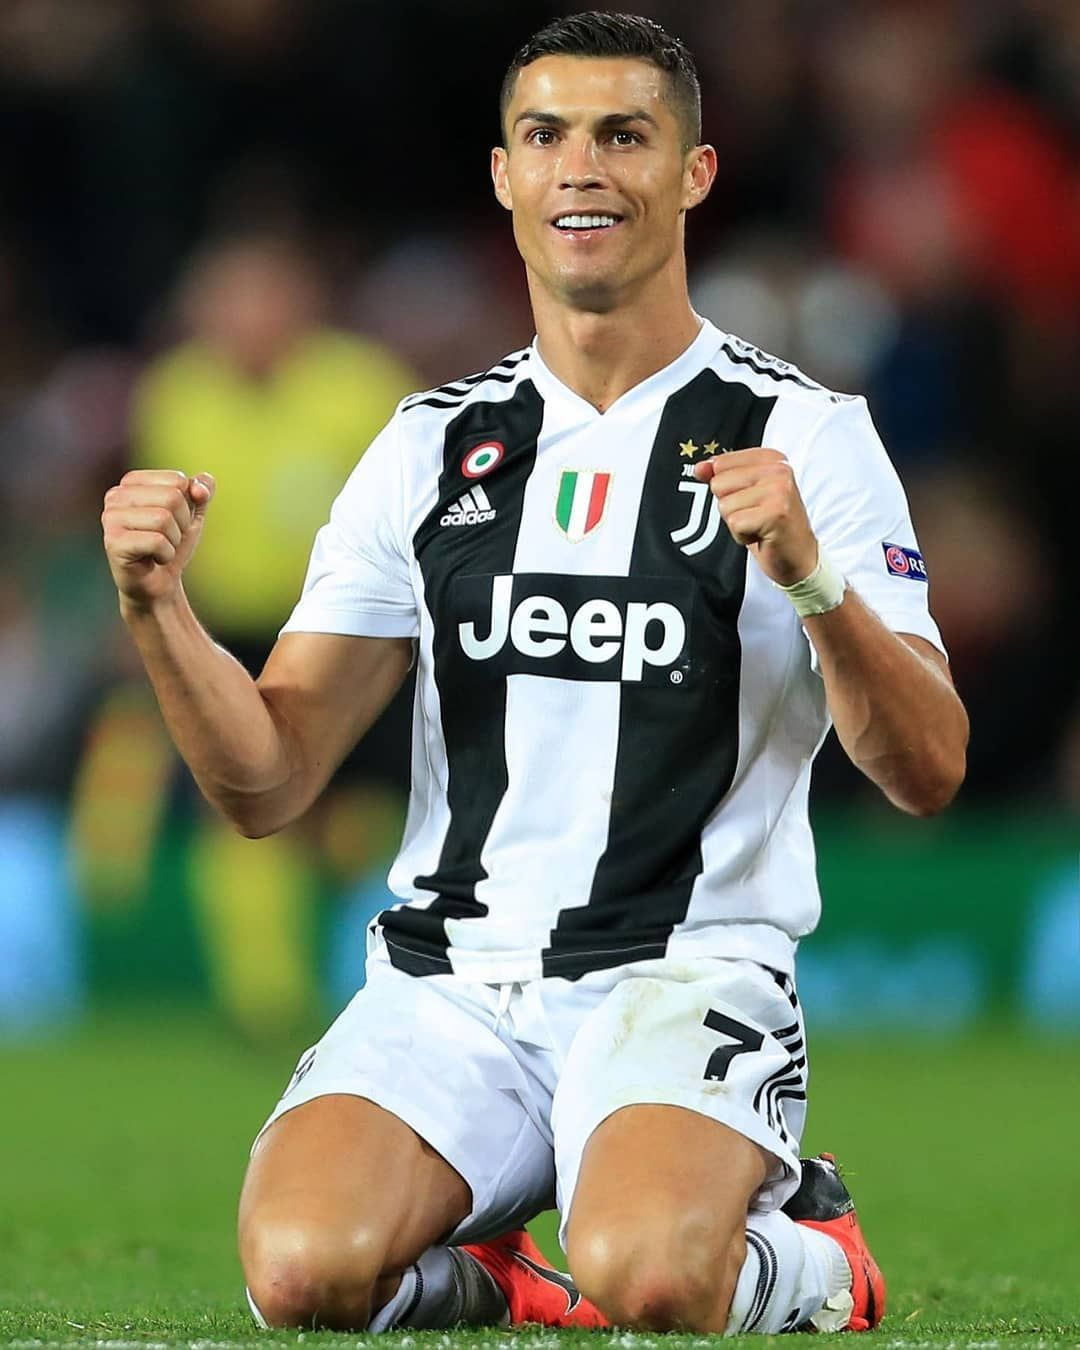 In Just 2 Seasons Cristiano Ranked 7th In The List Of Juventus S Top Scorers In The Champions League 1 Alessa In 2020 Cristiano Ronaldo Ronaldo Crstiano Ronaldo